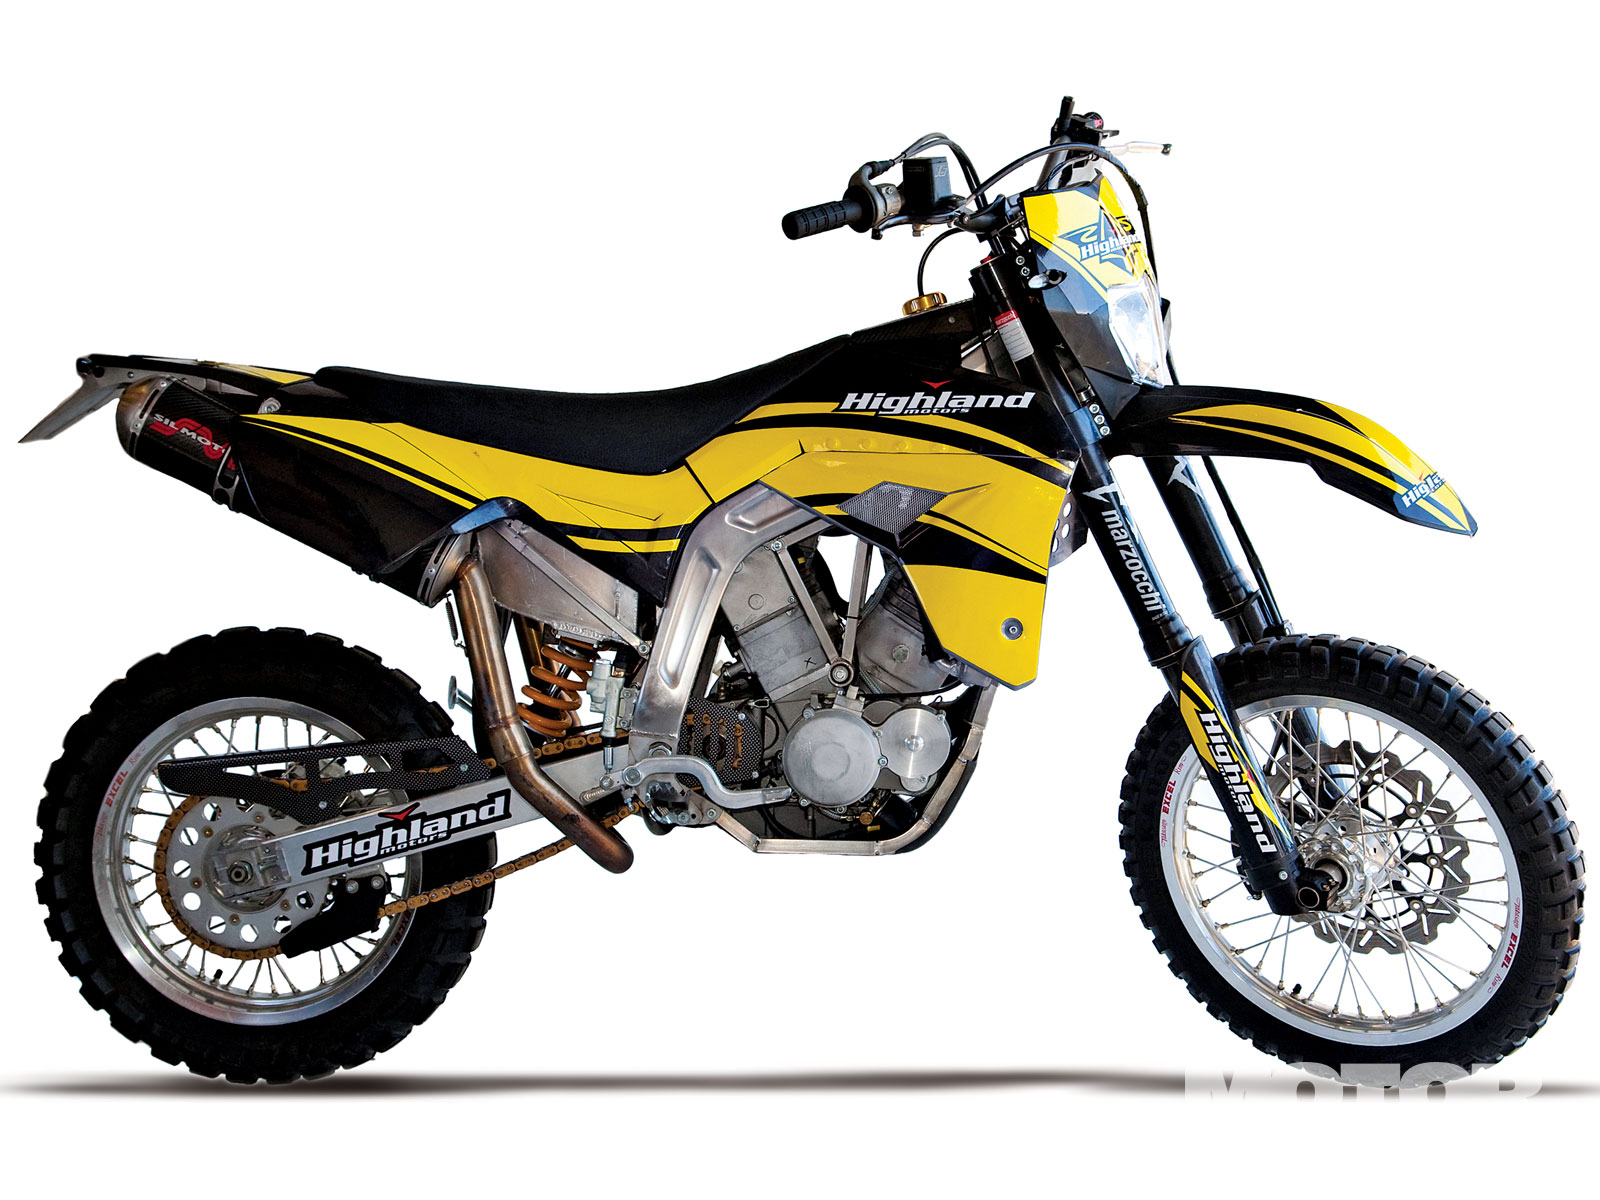 Highland 950 V2 Outback Supermoto 2008 images #169802